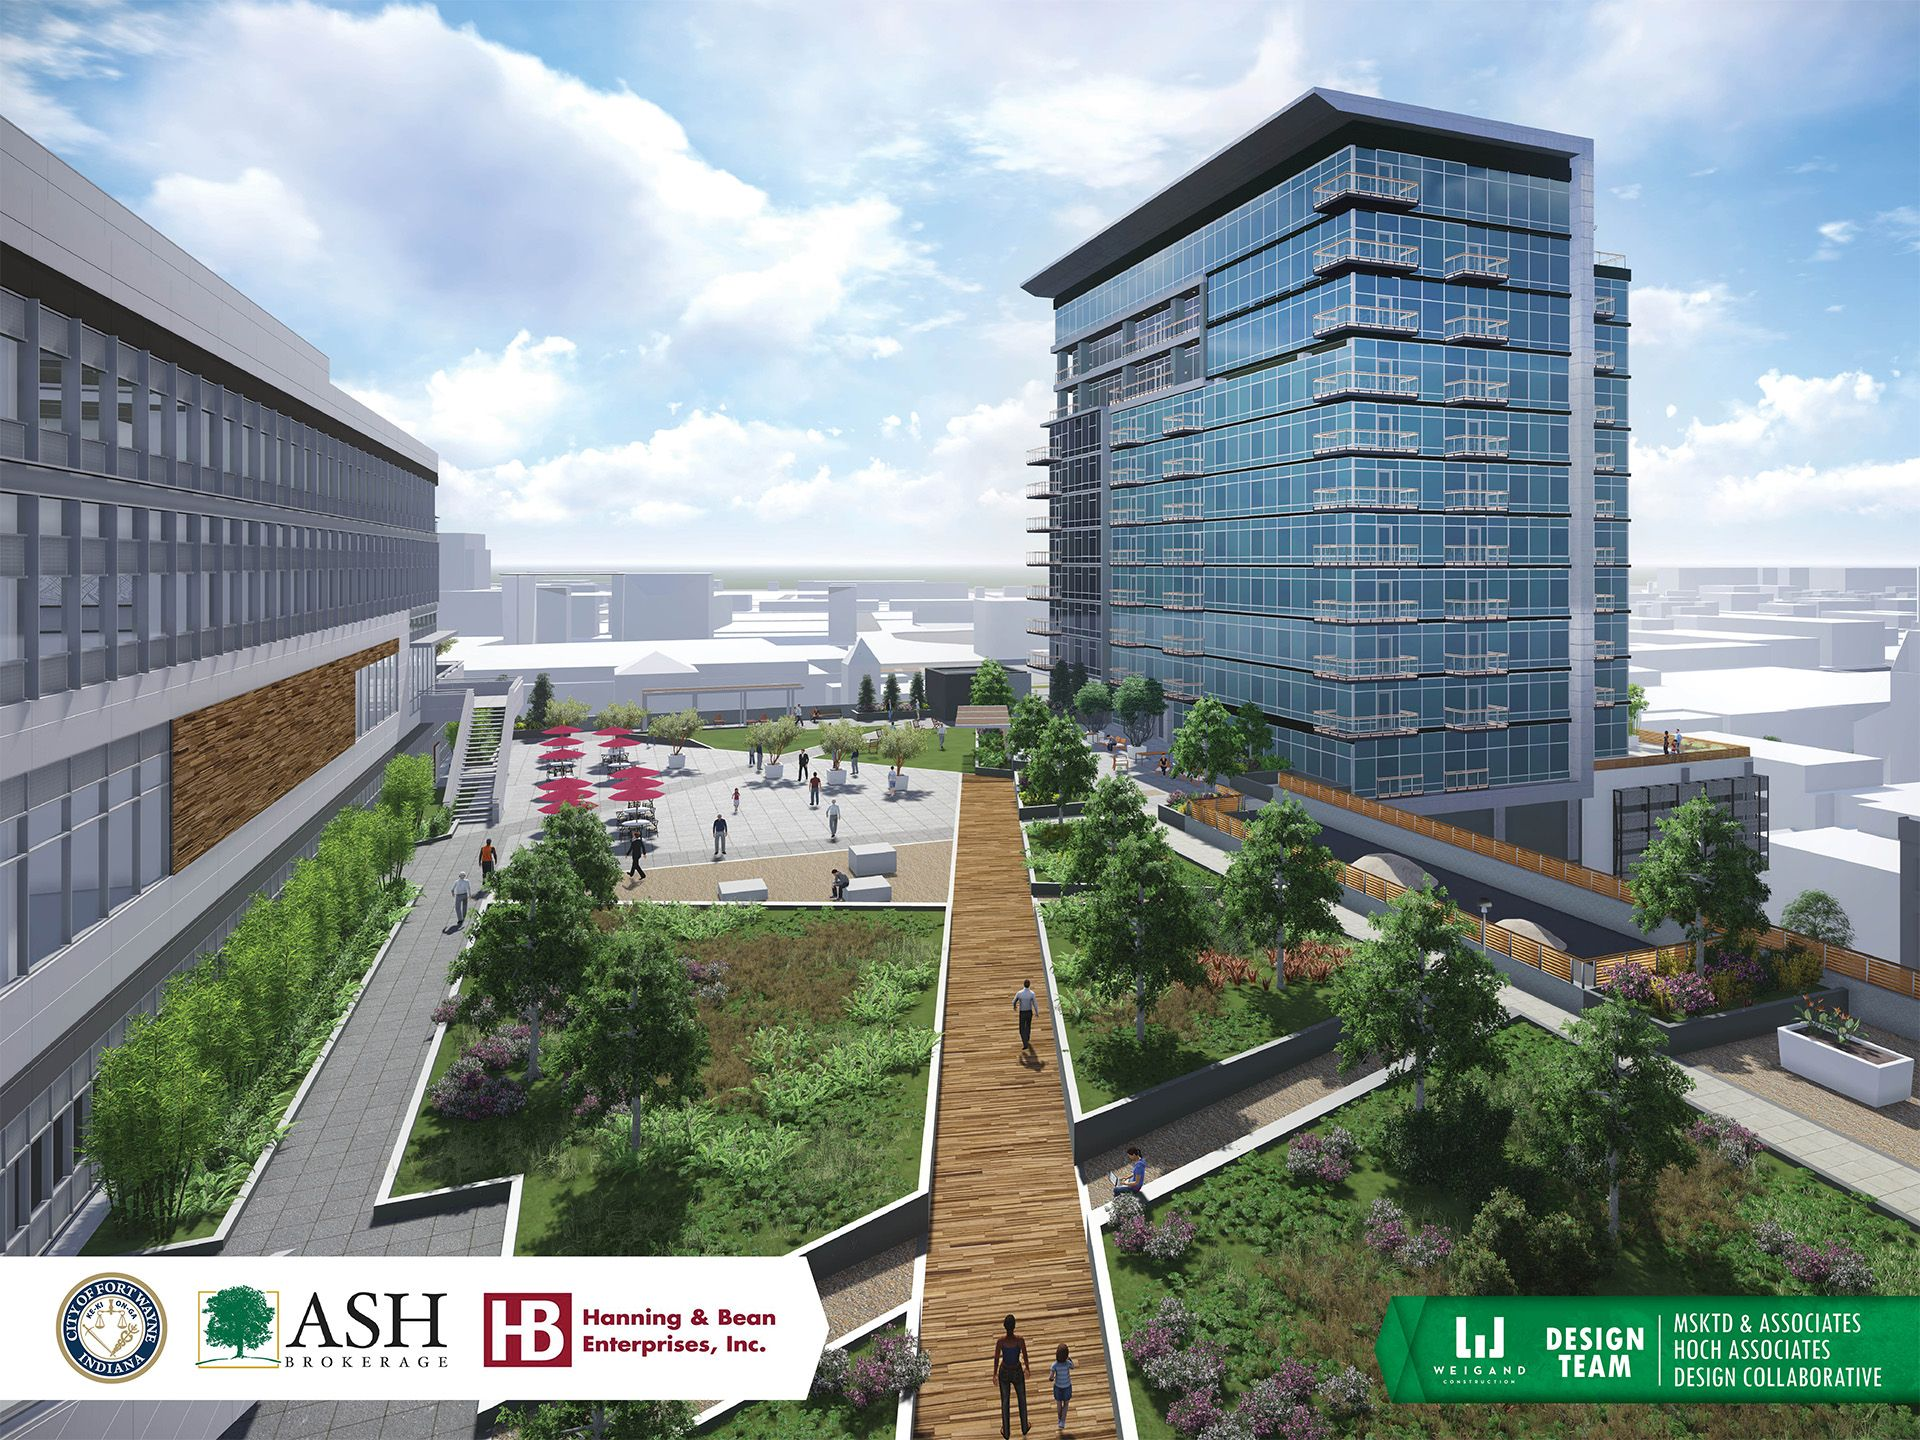 The Ash Brokerage project known as 'Emerald Skyline' is